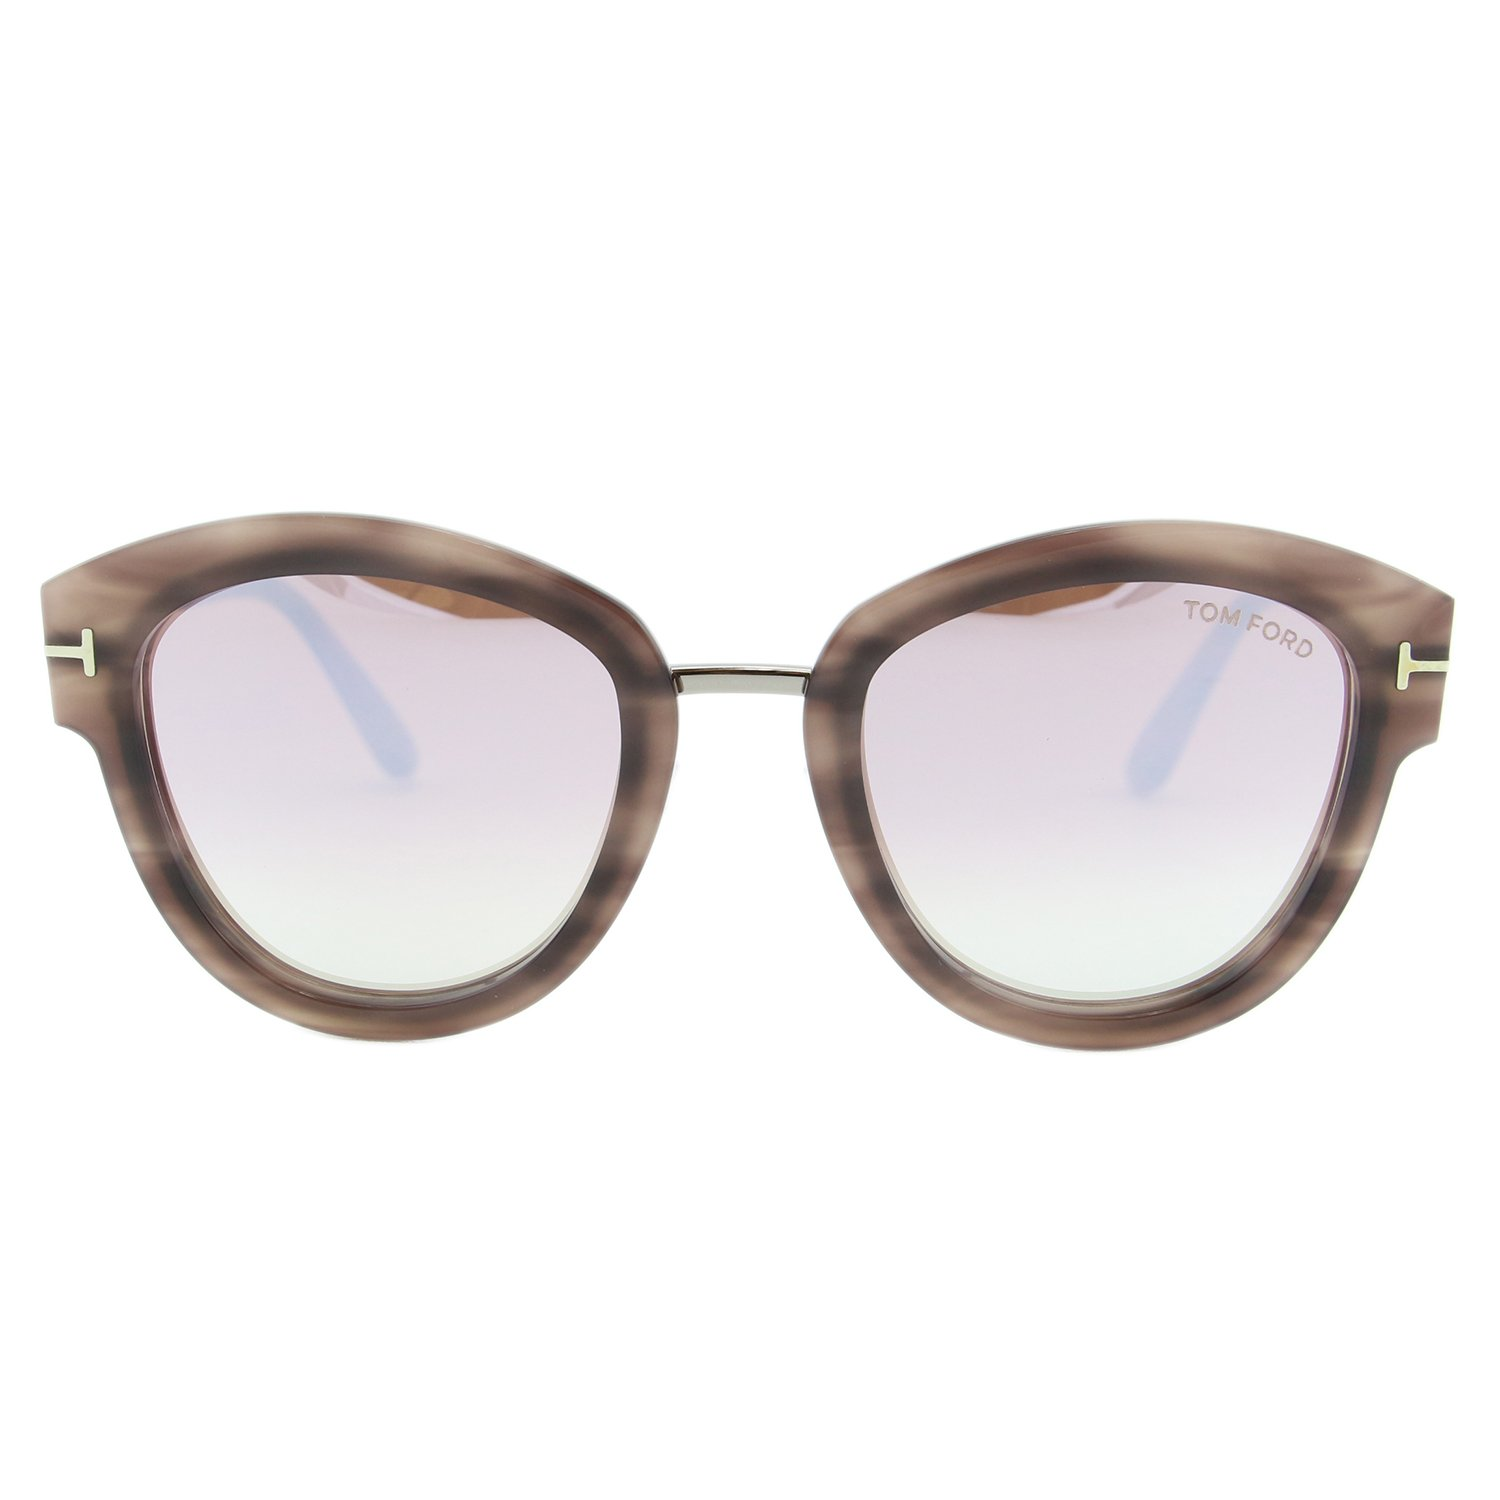 da2d2d6d7e5 Tom Ford MIA-02 FT-574 55Z Women Pink Havana Rounded Cat-Eye Mirrored  Sunglasses at Amazon Men s Clothing store